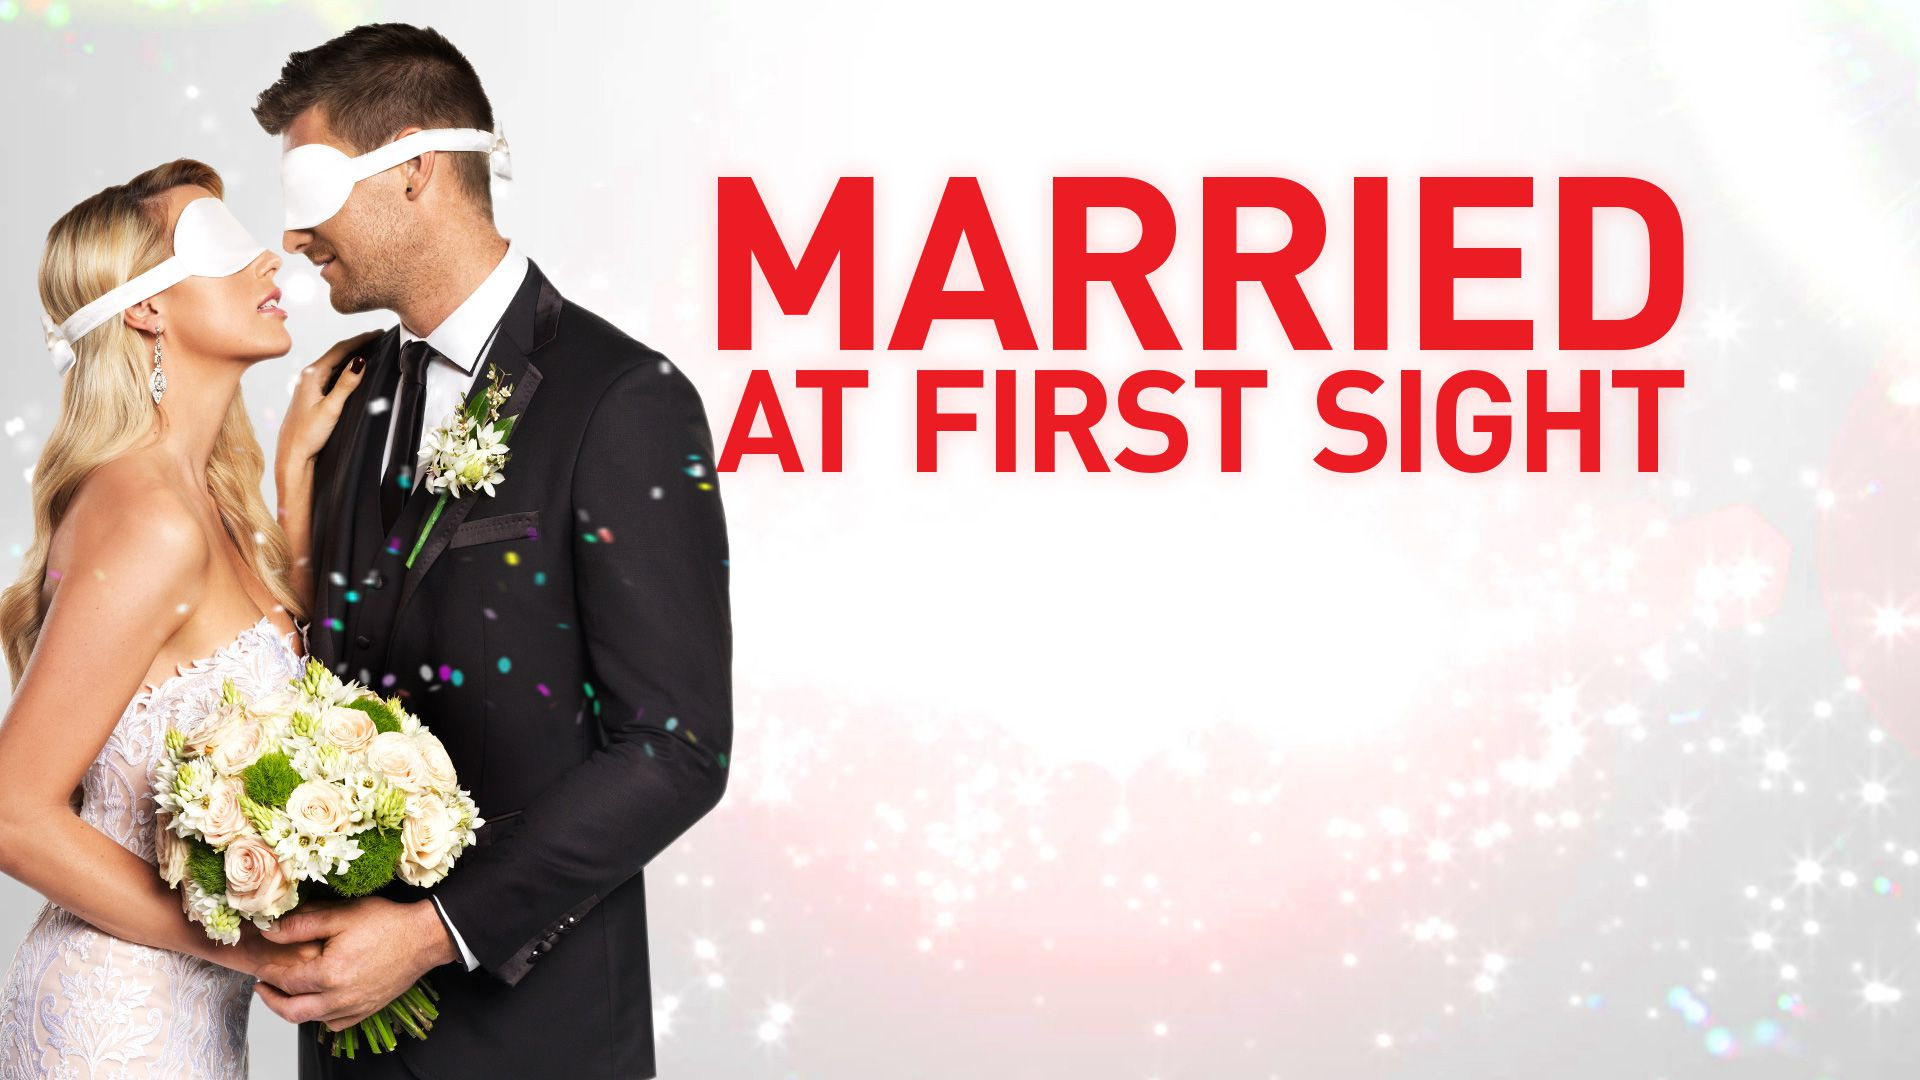 Married at First Sight | 9Now